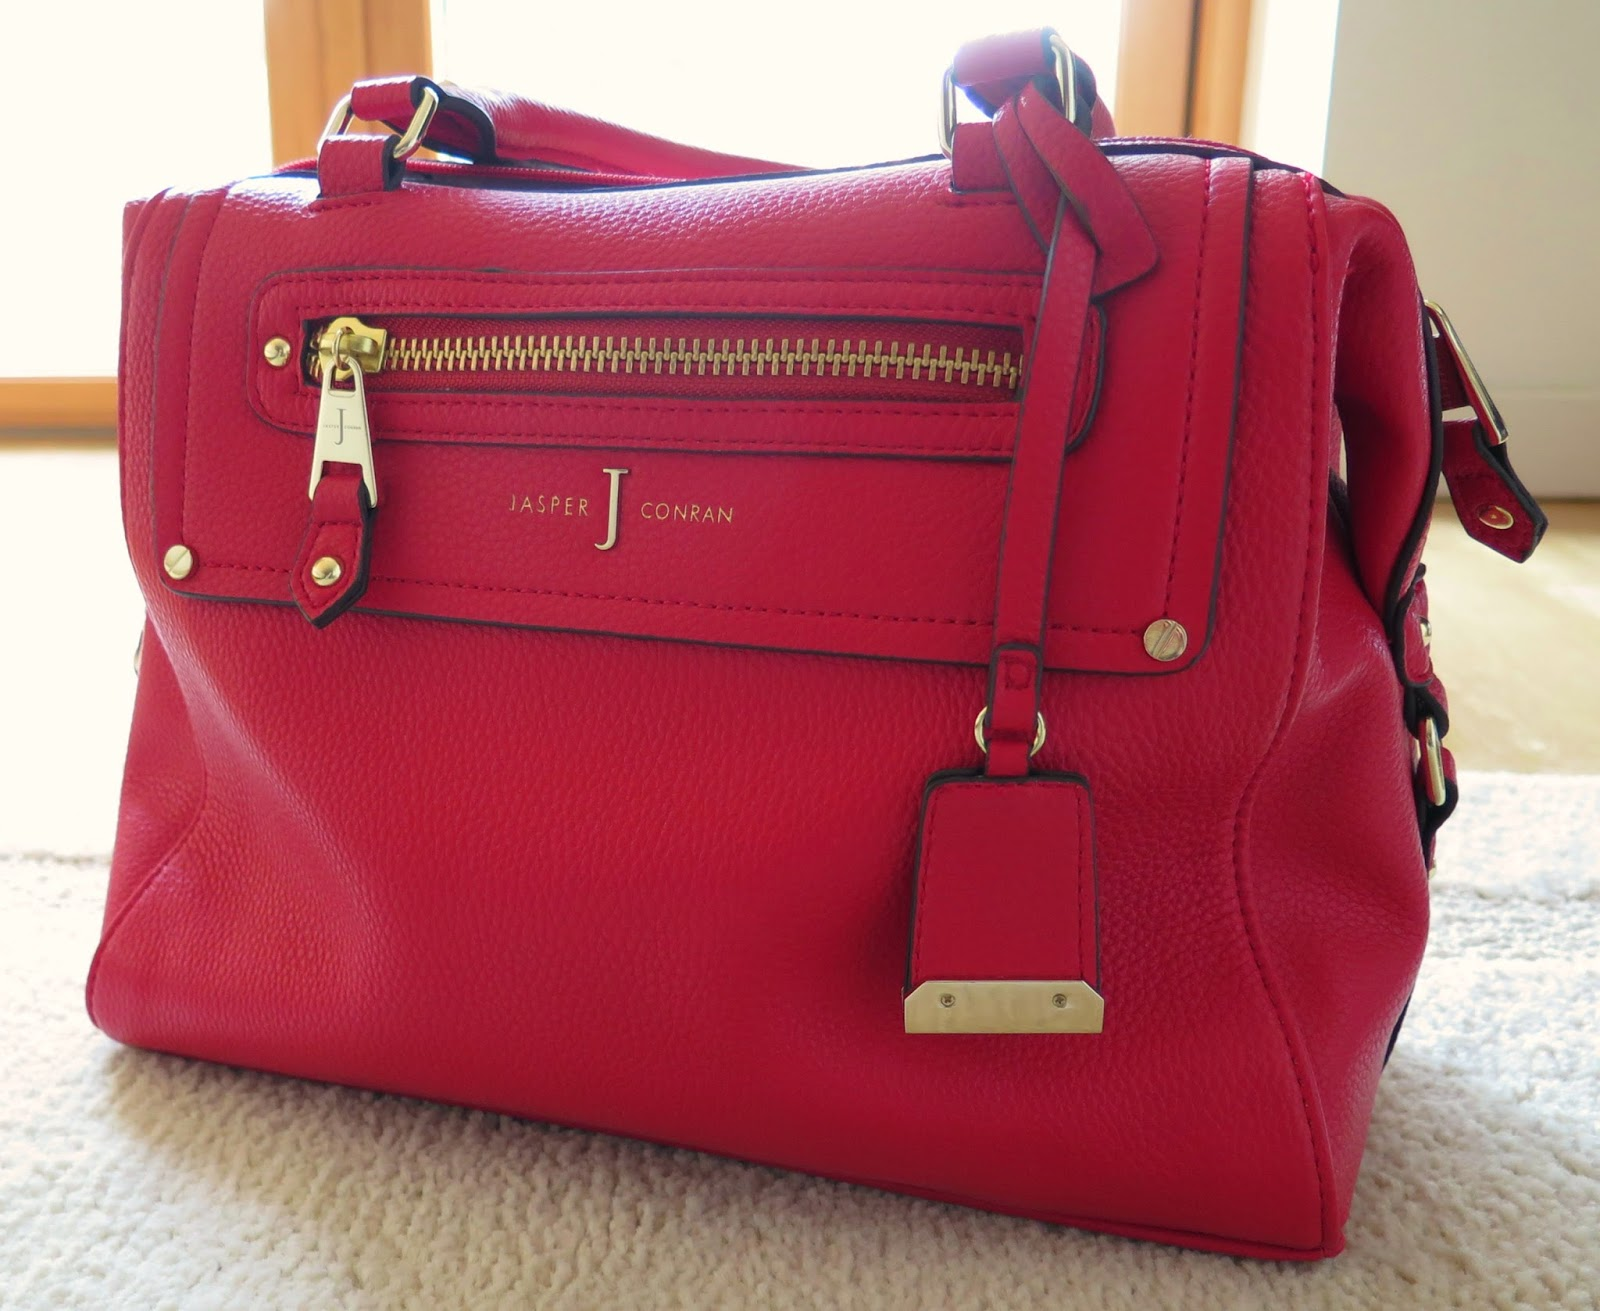 red handbag, jasper conran